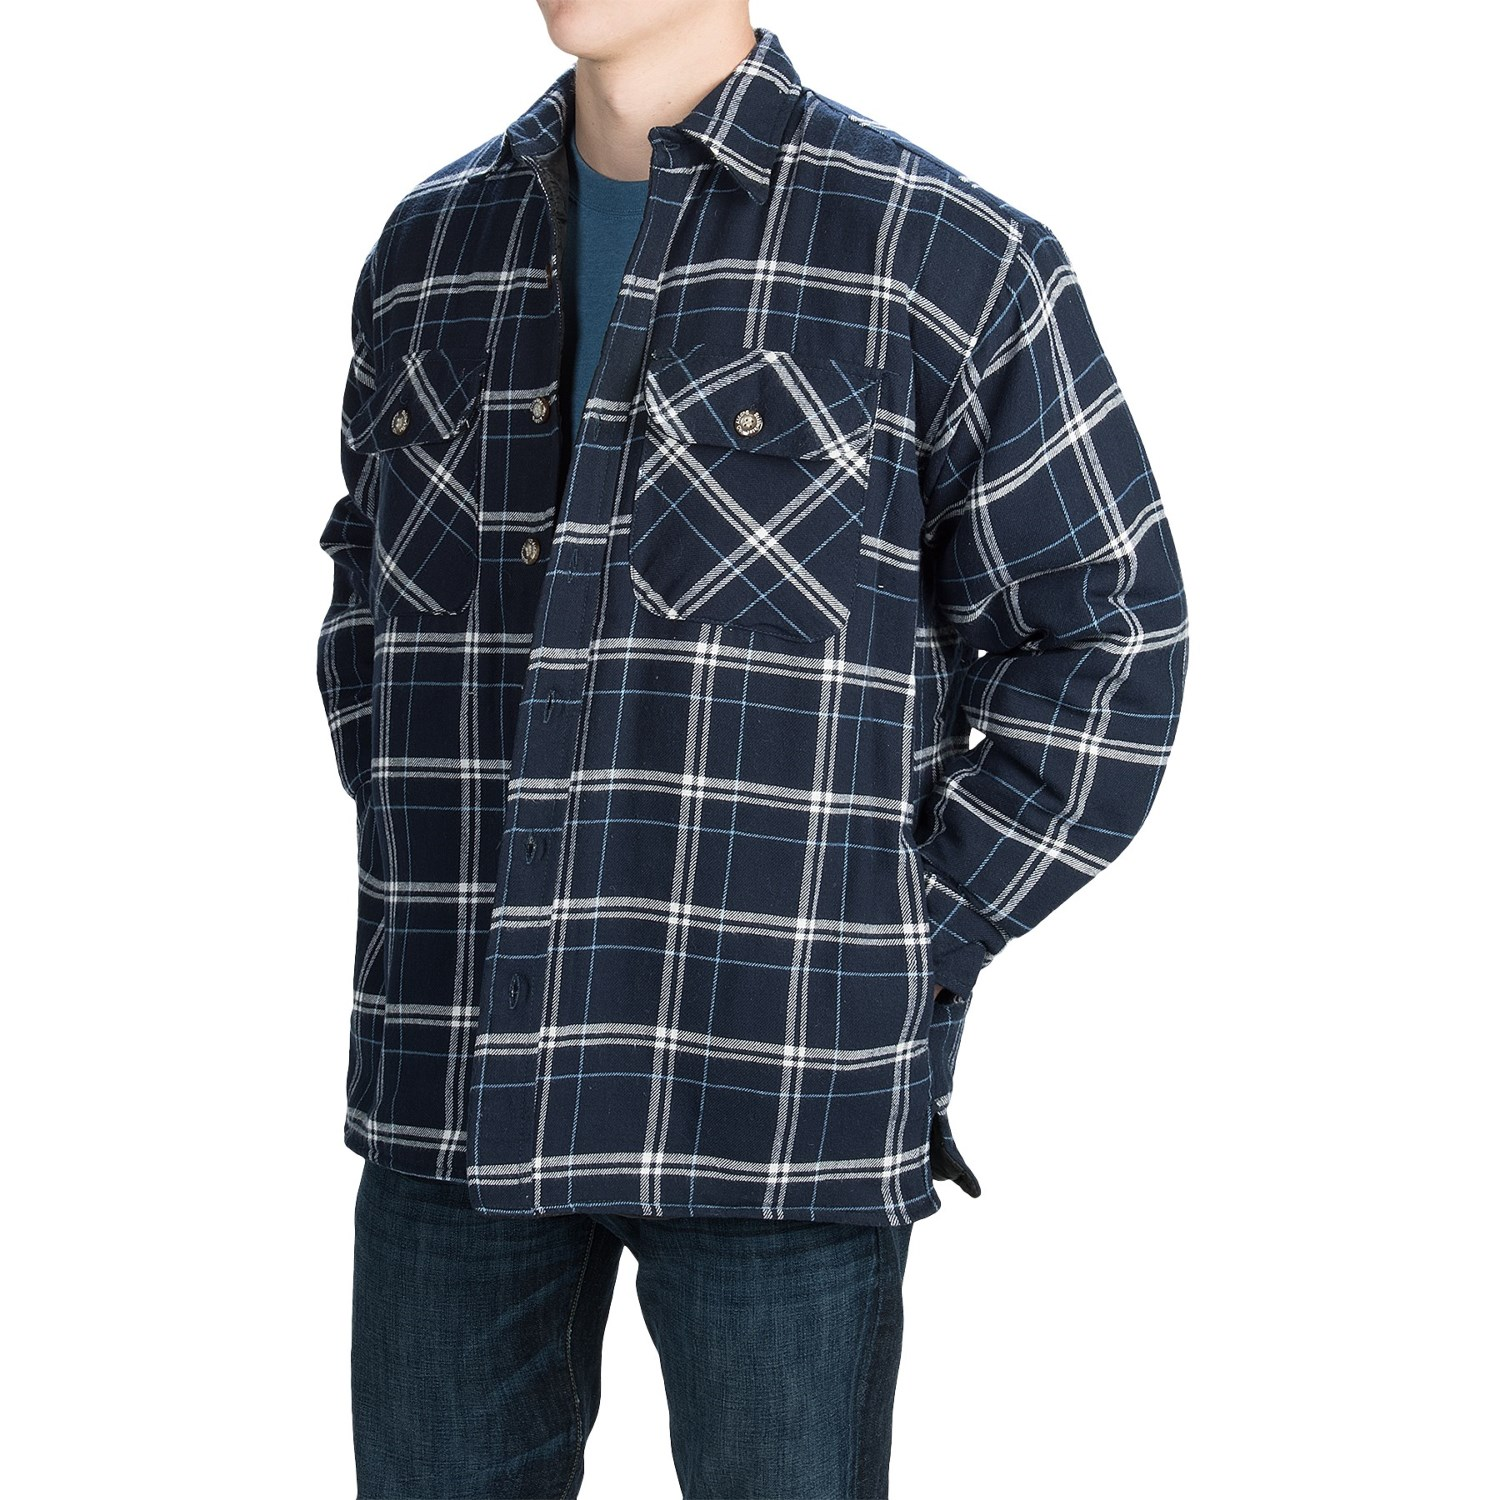 Stillwater supply co plaid shirt jacket for men save 71 for Plaid shirt jacket mens